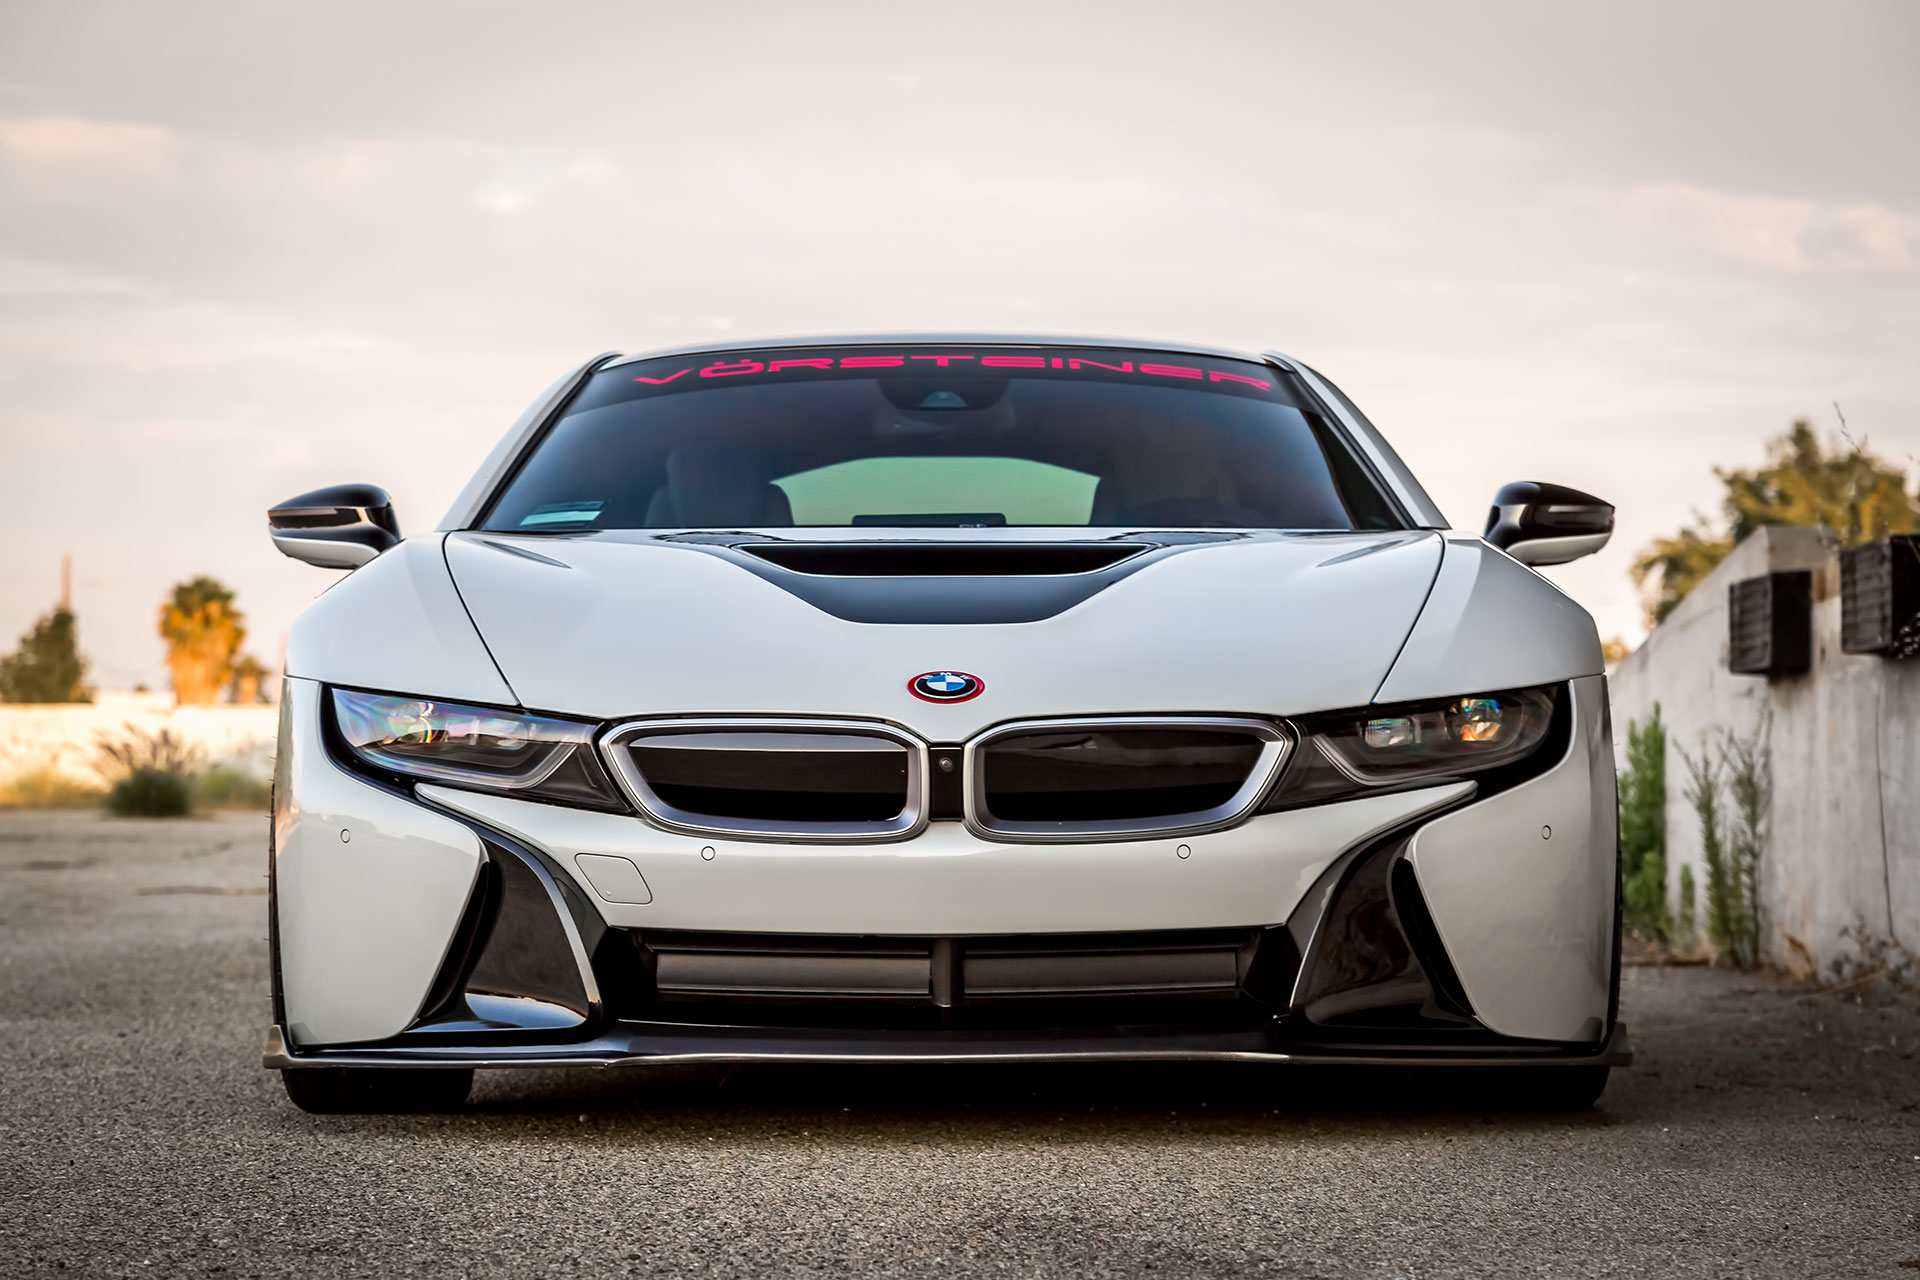 2016 Bmw I8 Vorsteiner Hd Cars 4k Wallpapers Images Backgrounds